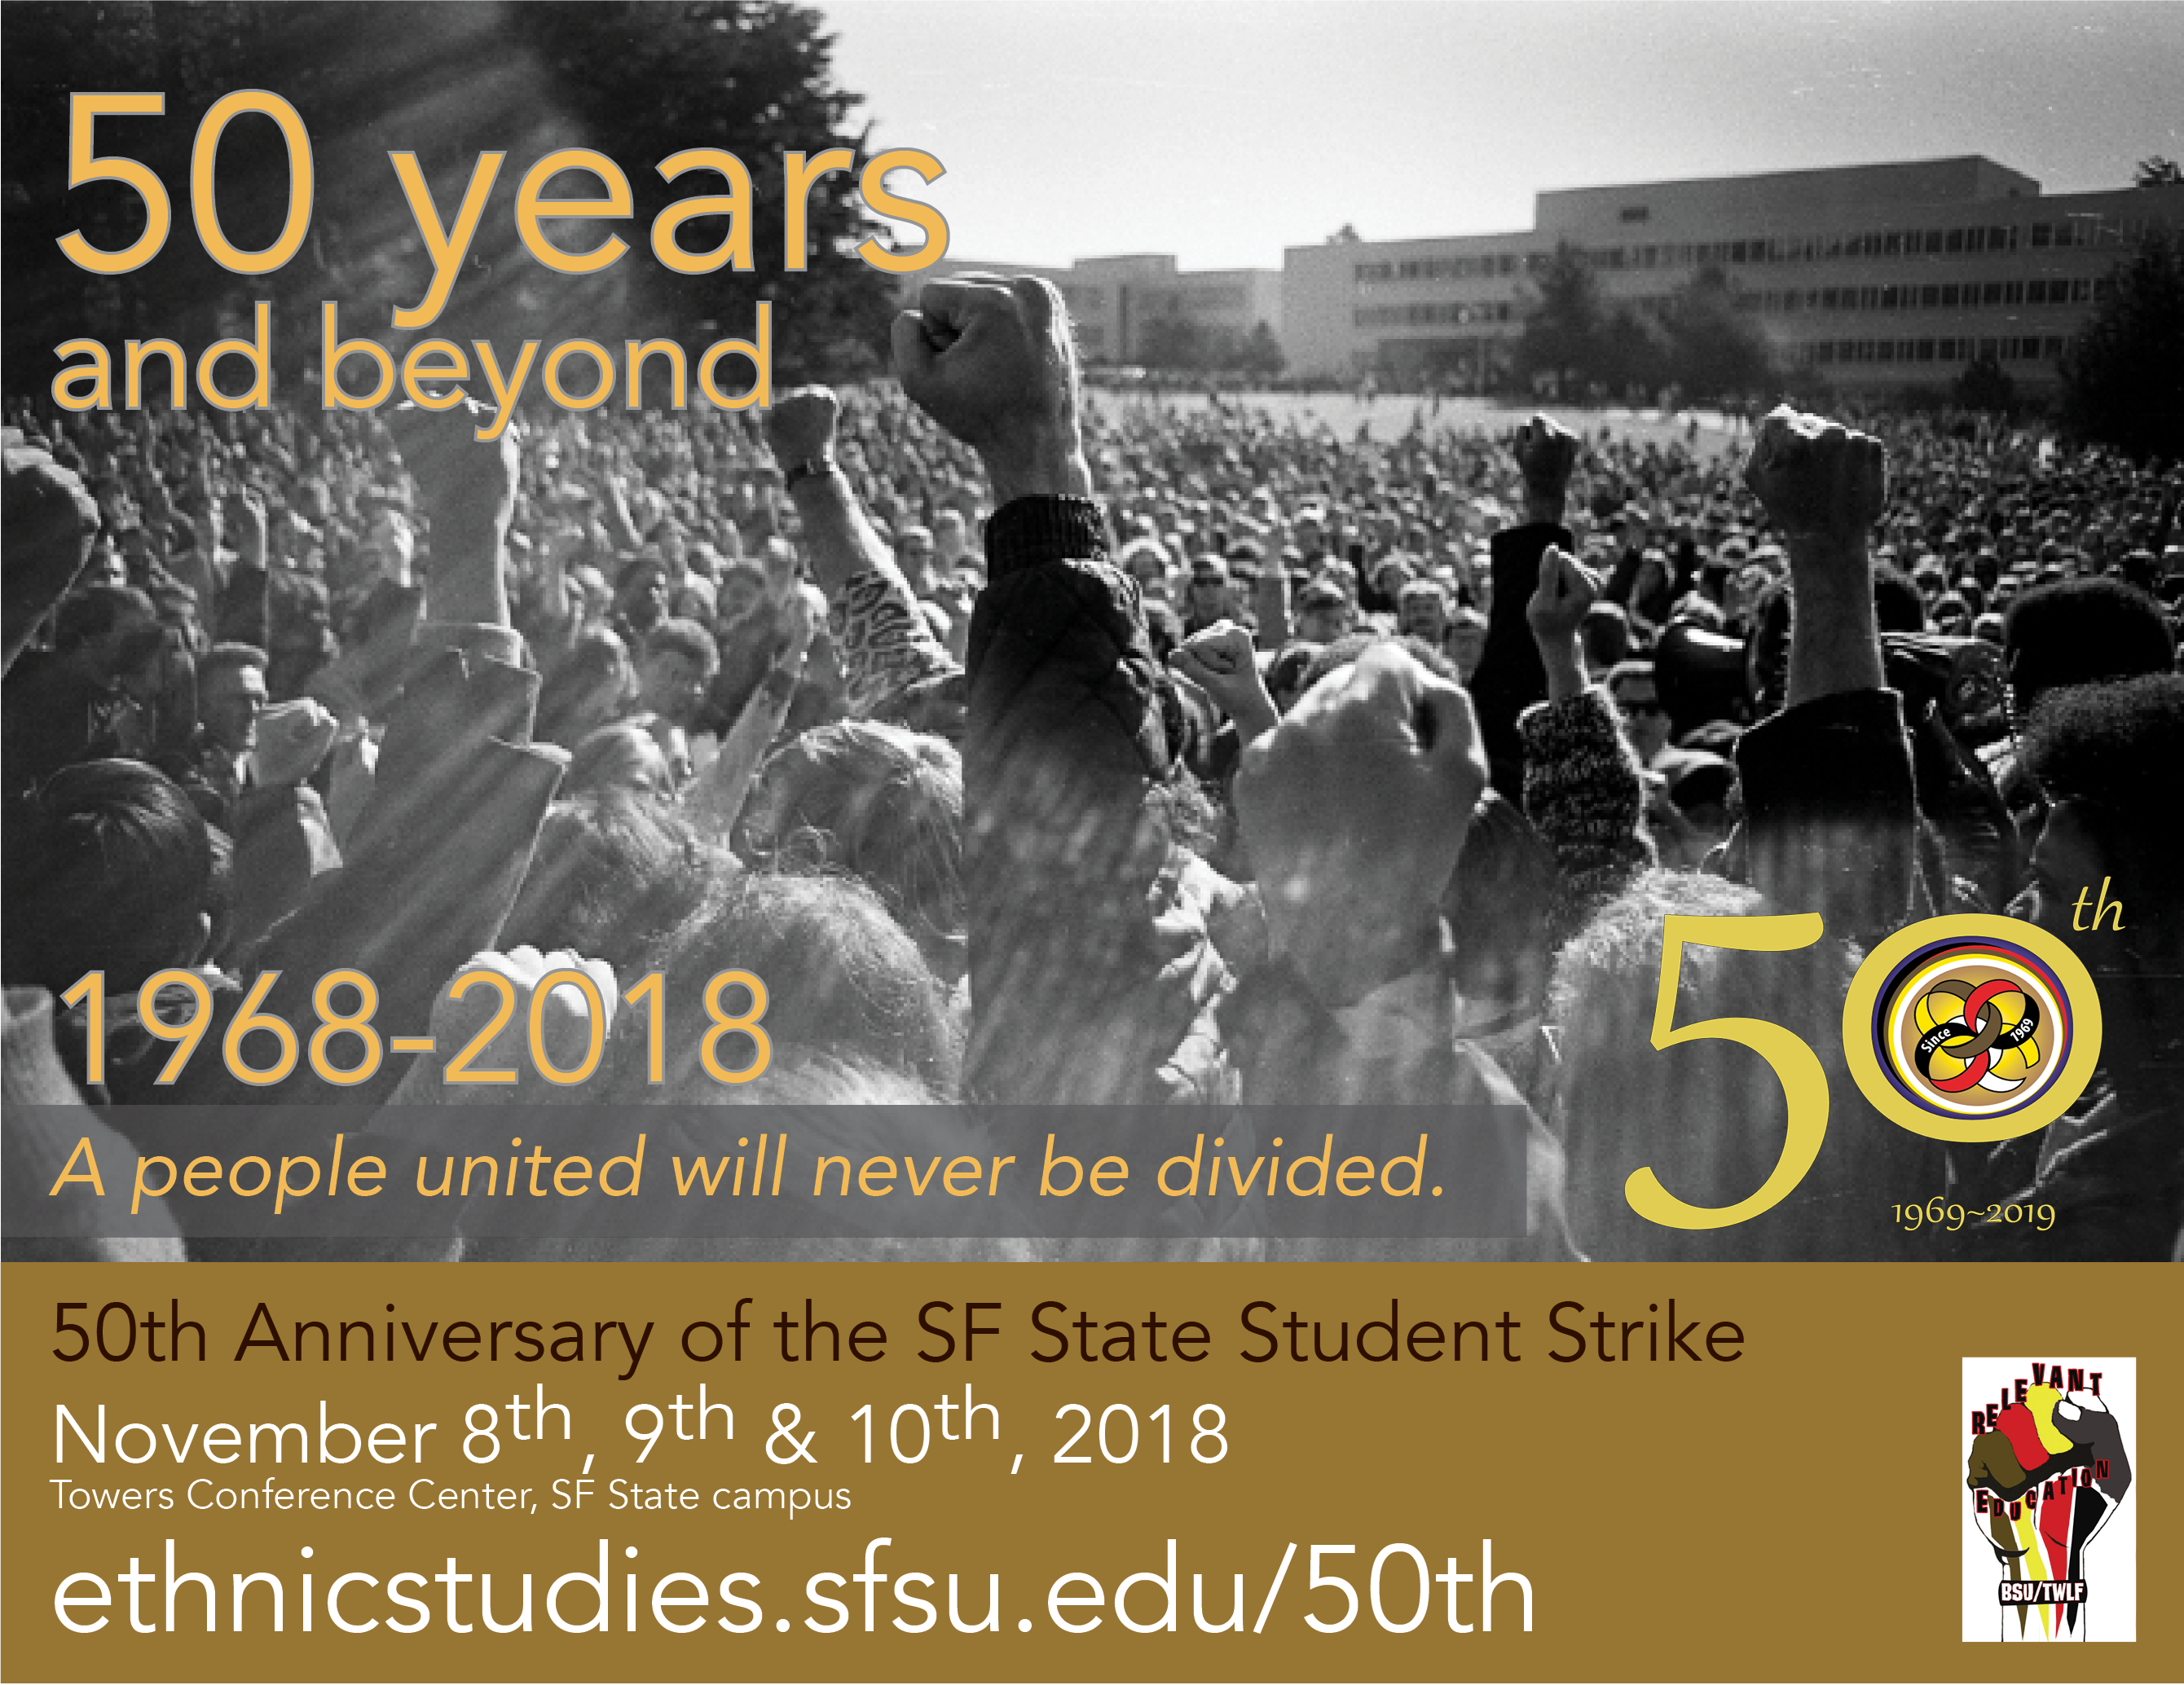 Join us for the 50th Anniversary November 8-10, Towers Conference Center: information at ethnicstudies.sfsu.edu/50th